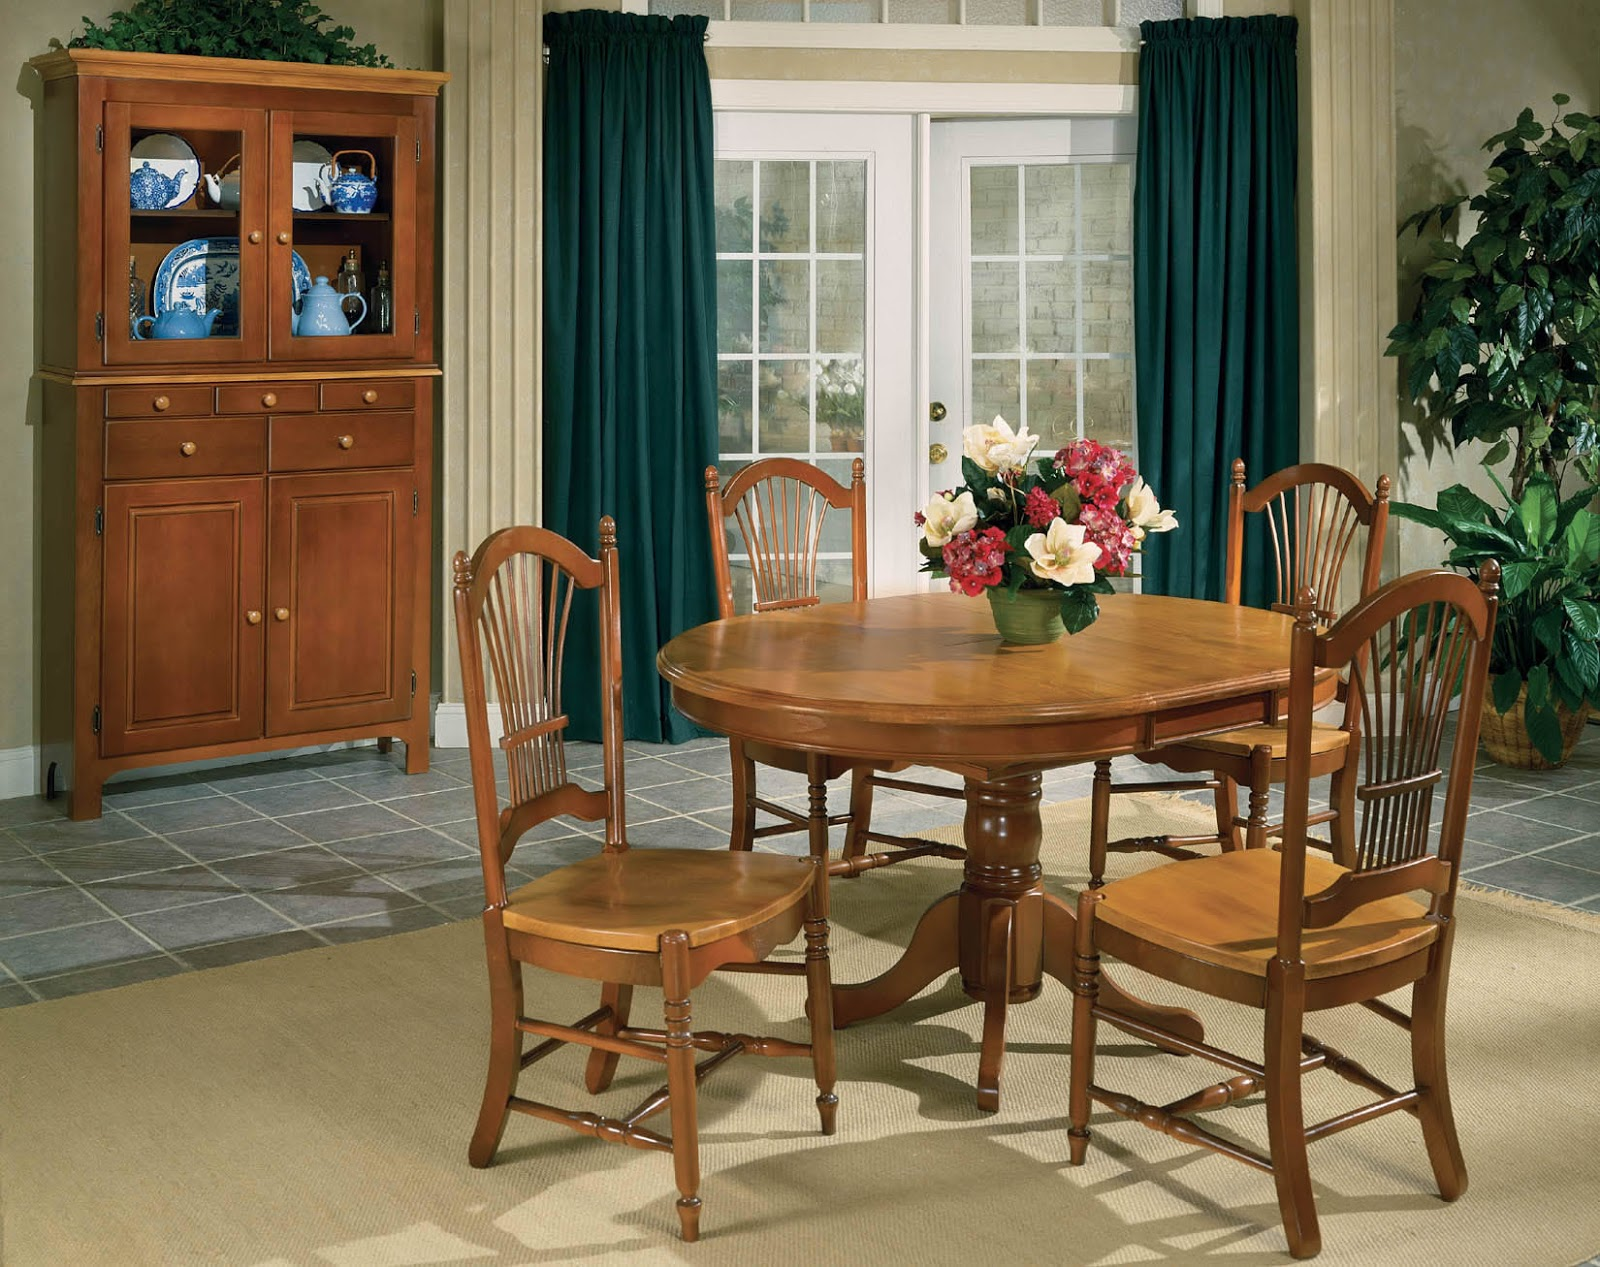 Beechbrook dining room set dining room unique dinette for Unusual dining furniture